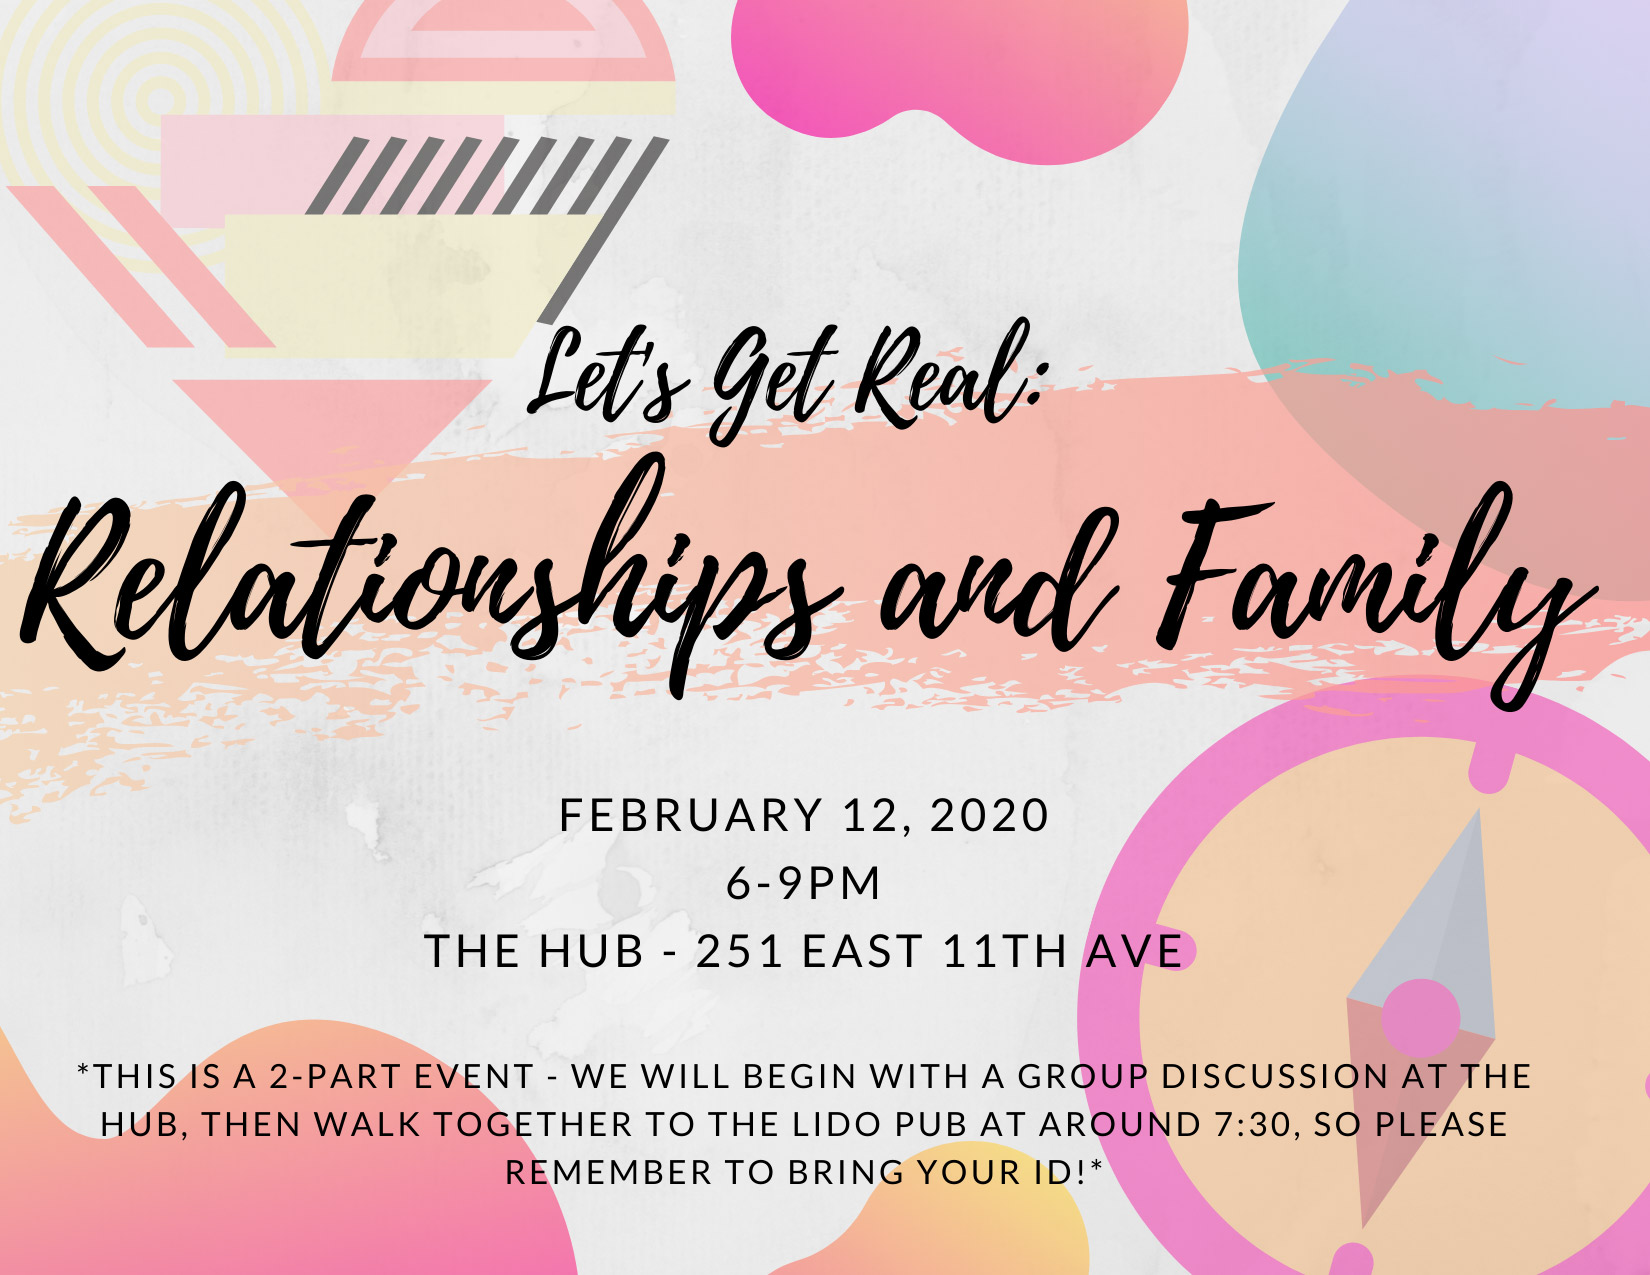 Relationships and Family Event